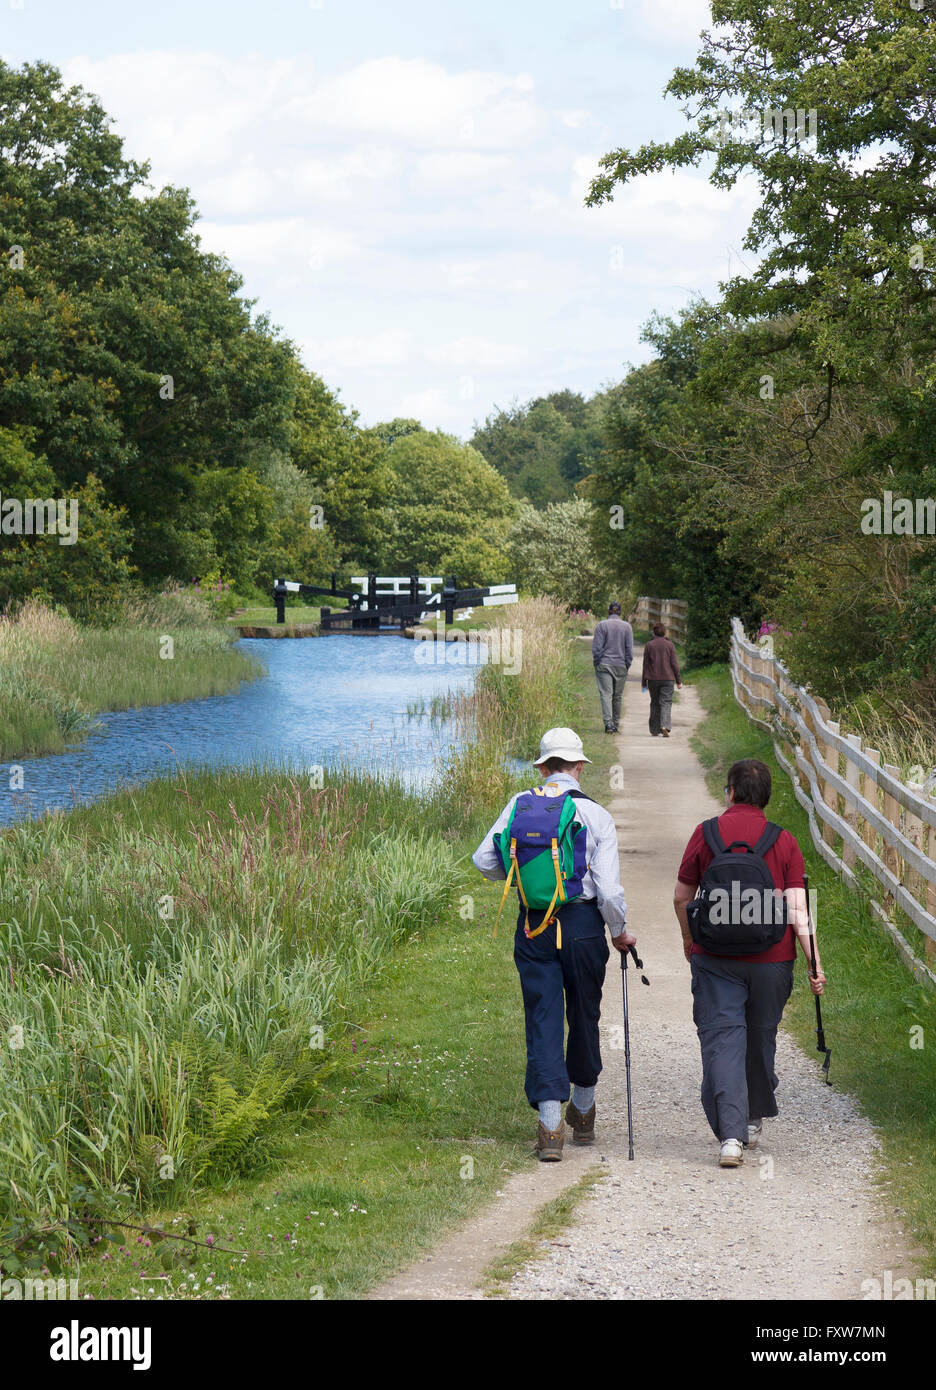 People walking along the towpath of the Huddersfield Narrow Canal in the Colne Valley, West Yorkshire, UK - Stock Image